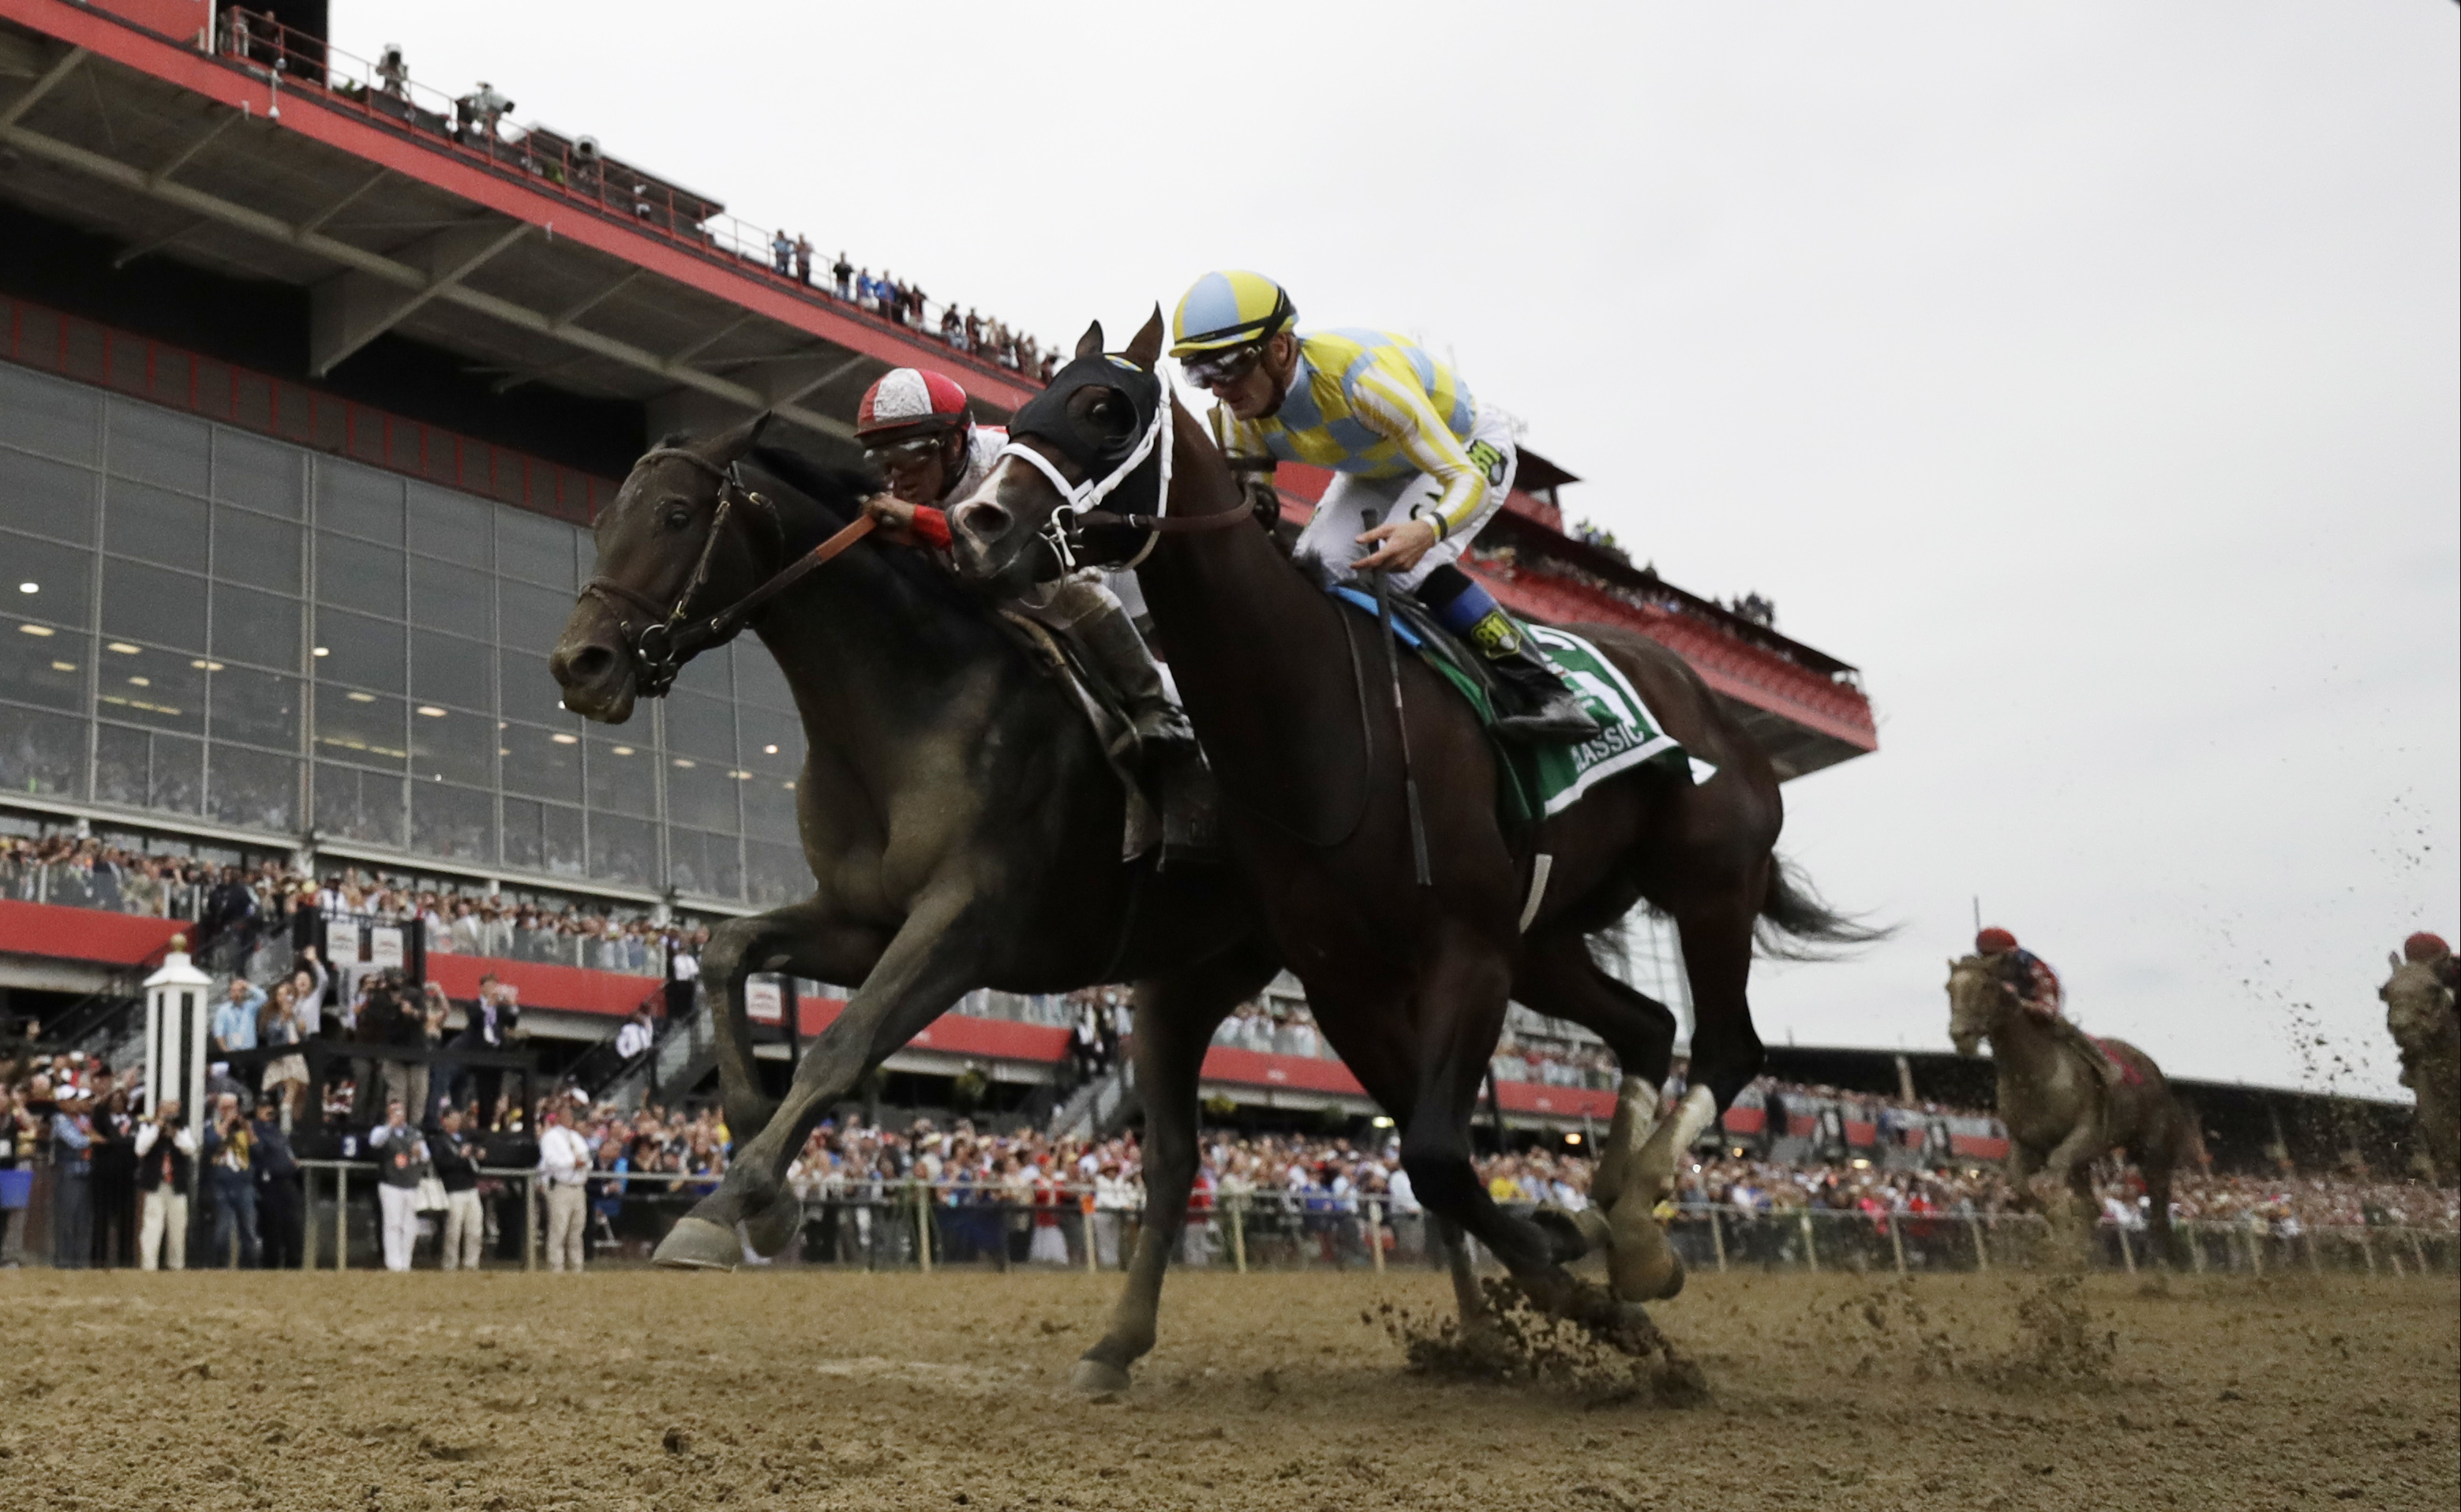 Cloud Computing (2), ridden by Javier Castellano, left, wins 142nd Preakness Stakes horse race at Pimlico race course as Classic Empire (5) with Julien Leparoux aboard takes second, Saturday, May 20, 2017, in Baltimore. (AP Photo/Matt Slocum)